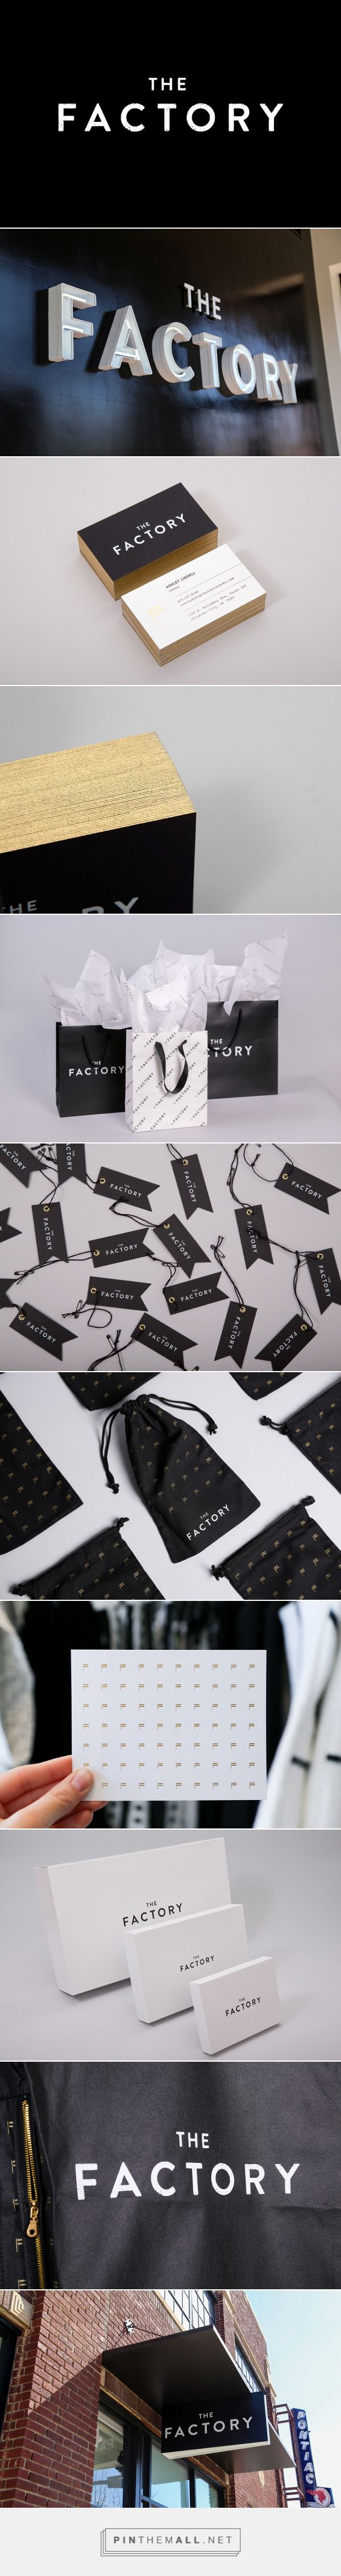 The best images about identity on pinterest logos business